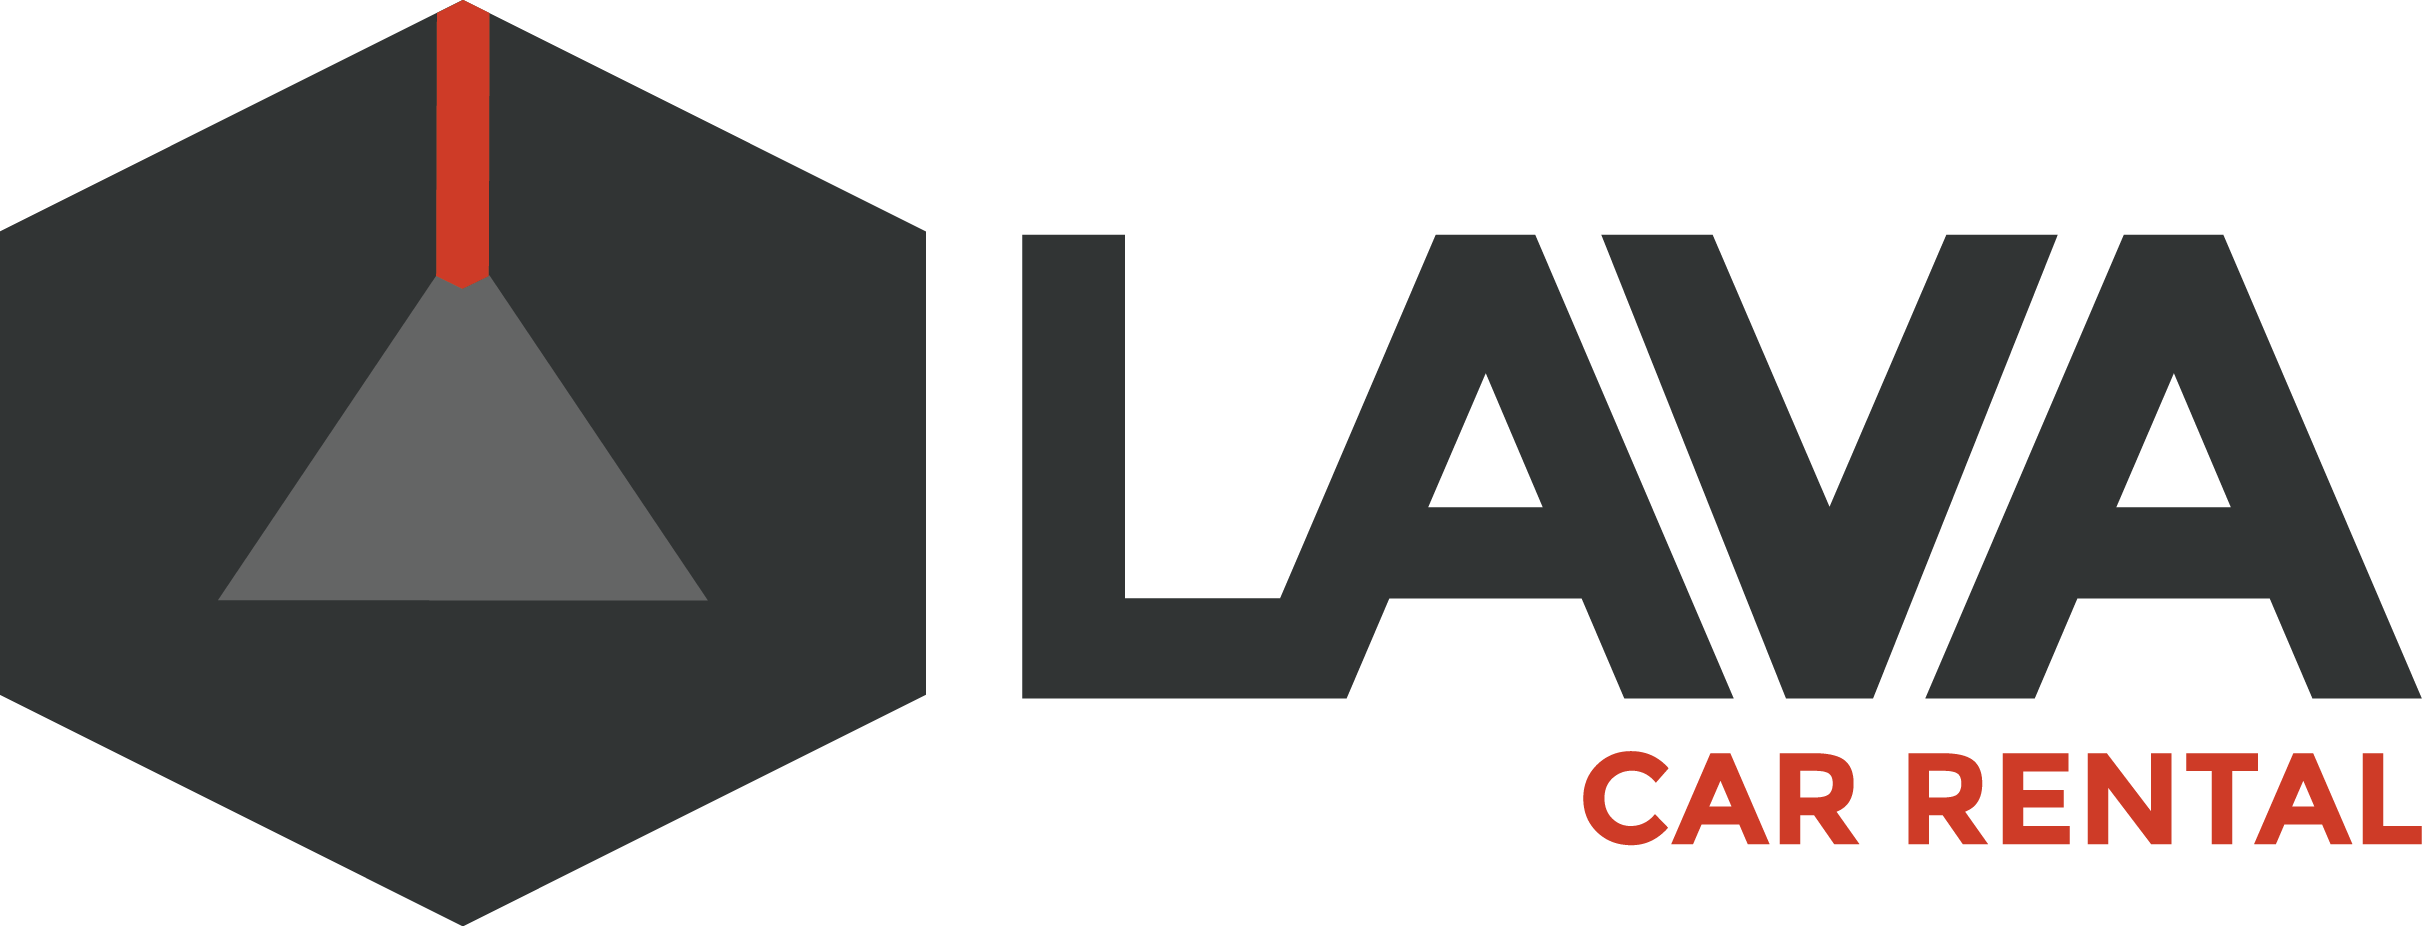 LAVA_CAR_RENTAL_LOGO_TRANSPARENT002.png